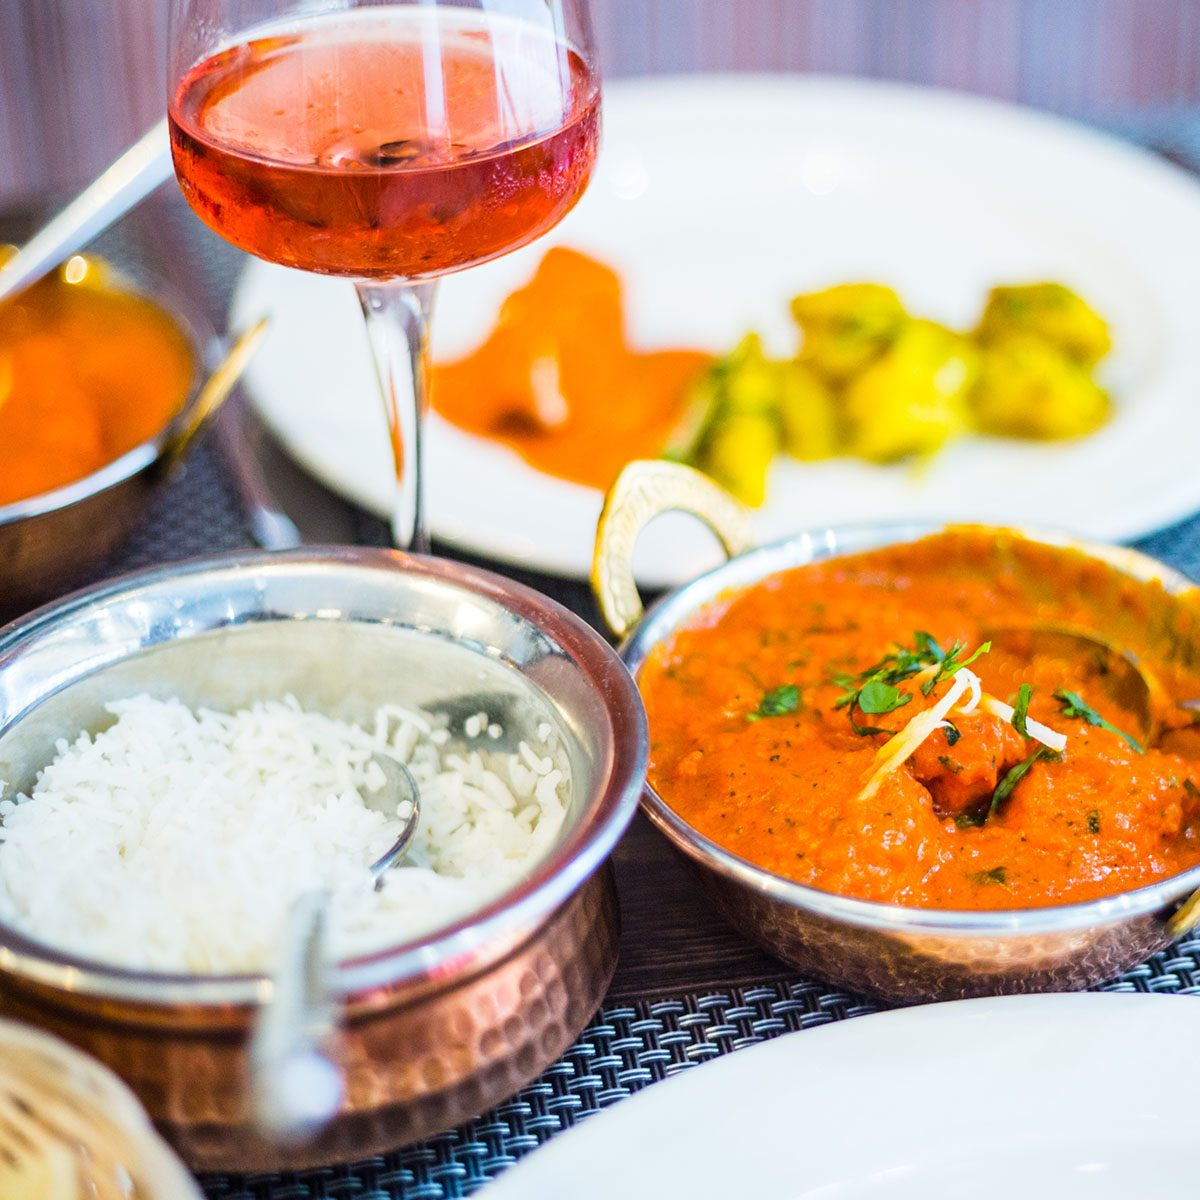 Indian Meal (Rice, Potato in Curry, Chicken Masala) and Wine in Luxury Indian Restaurant